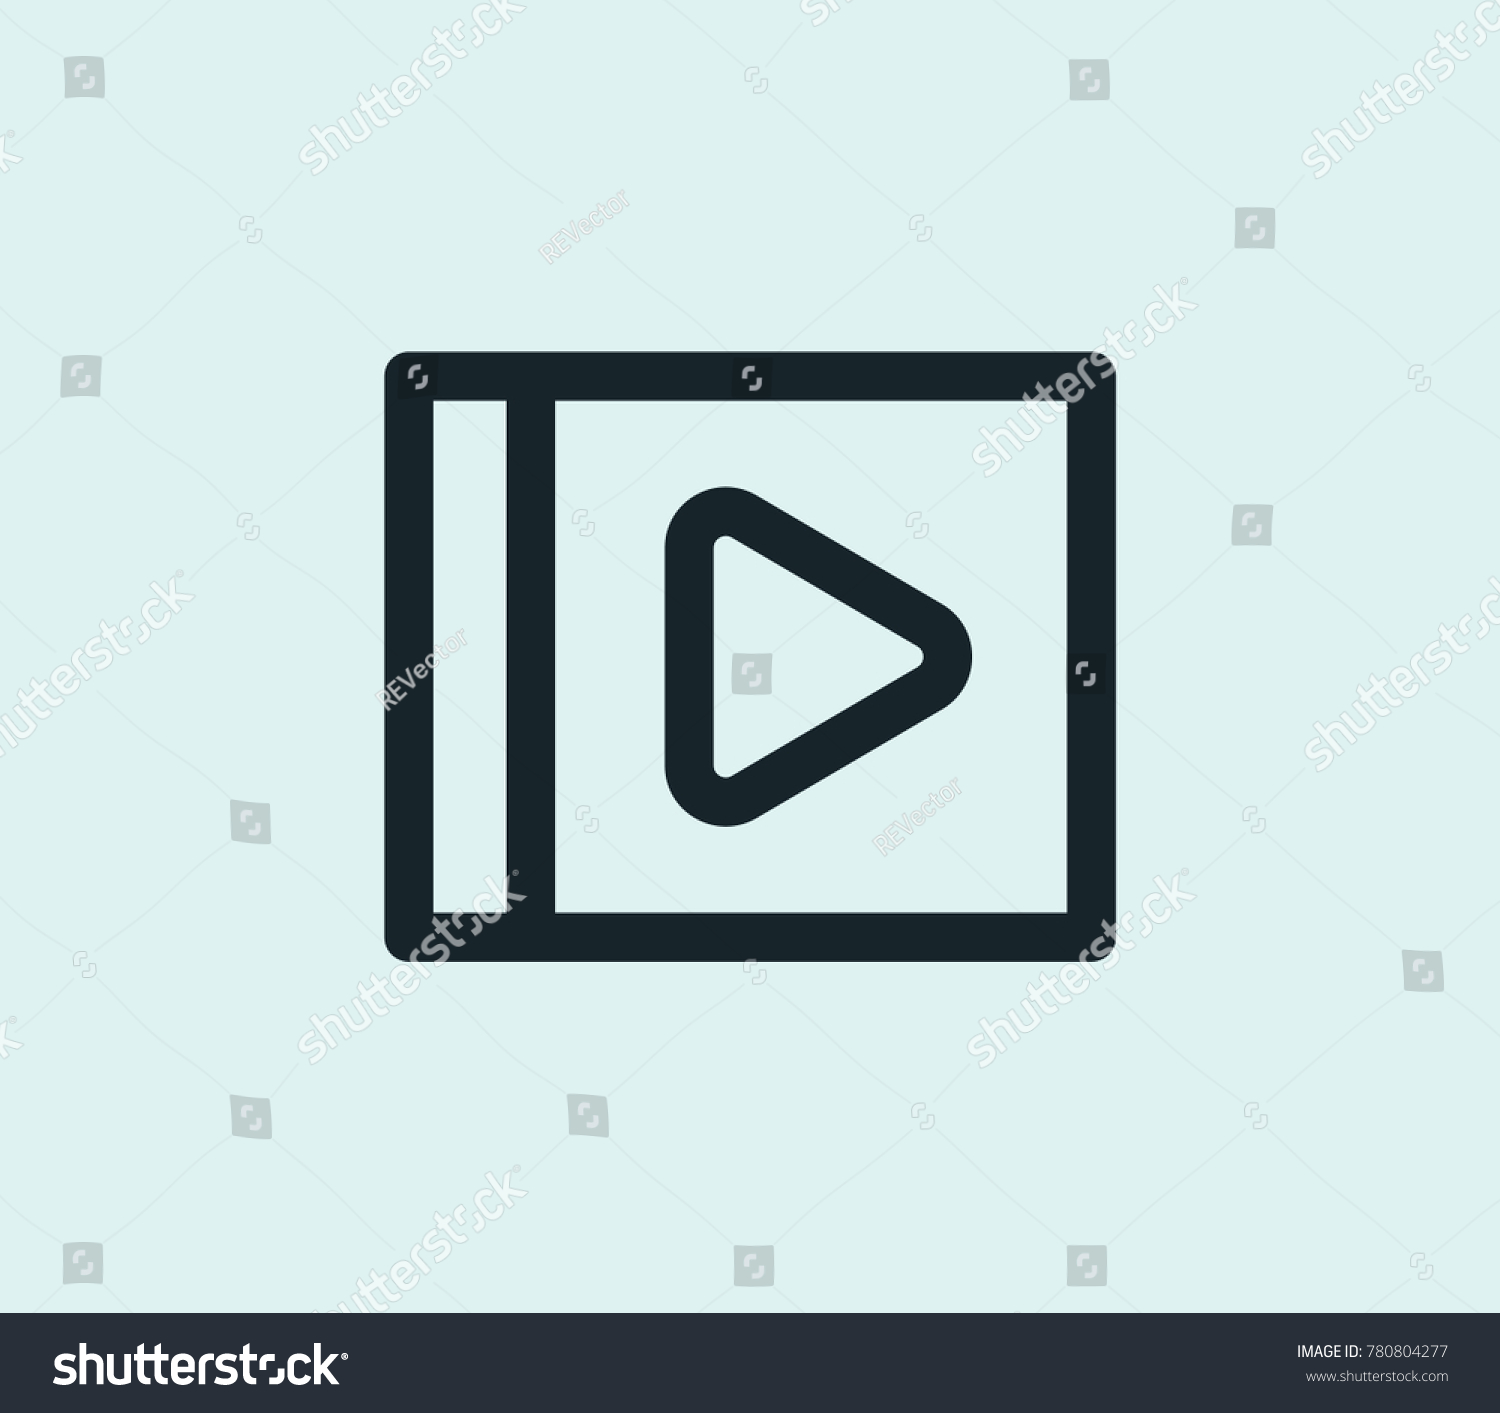 Popular Wallpaper Music Disk - stock-vector-musical-disk-icon-line-isolated-on-clean-background-music-file-concept-drawing-icon-line-in-modern-780804277  2018_194758.jpg